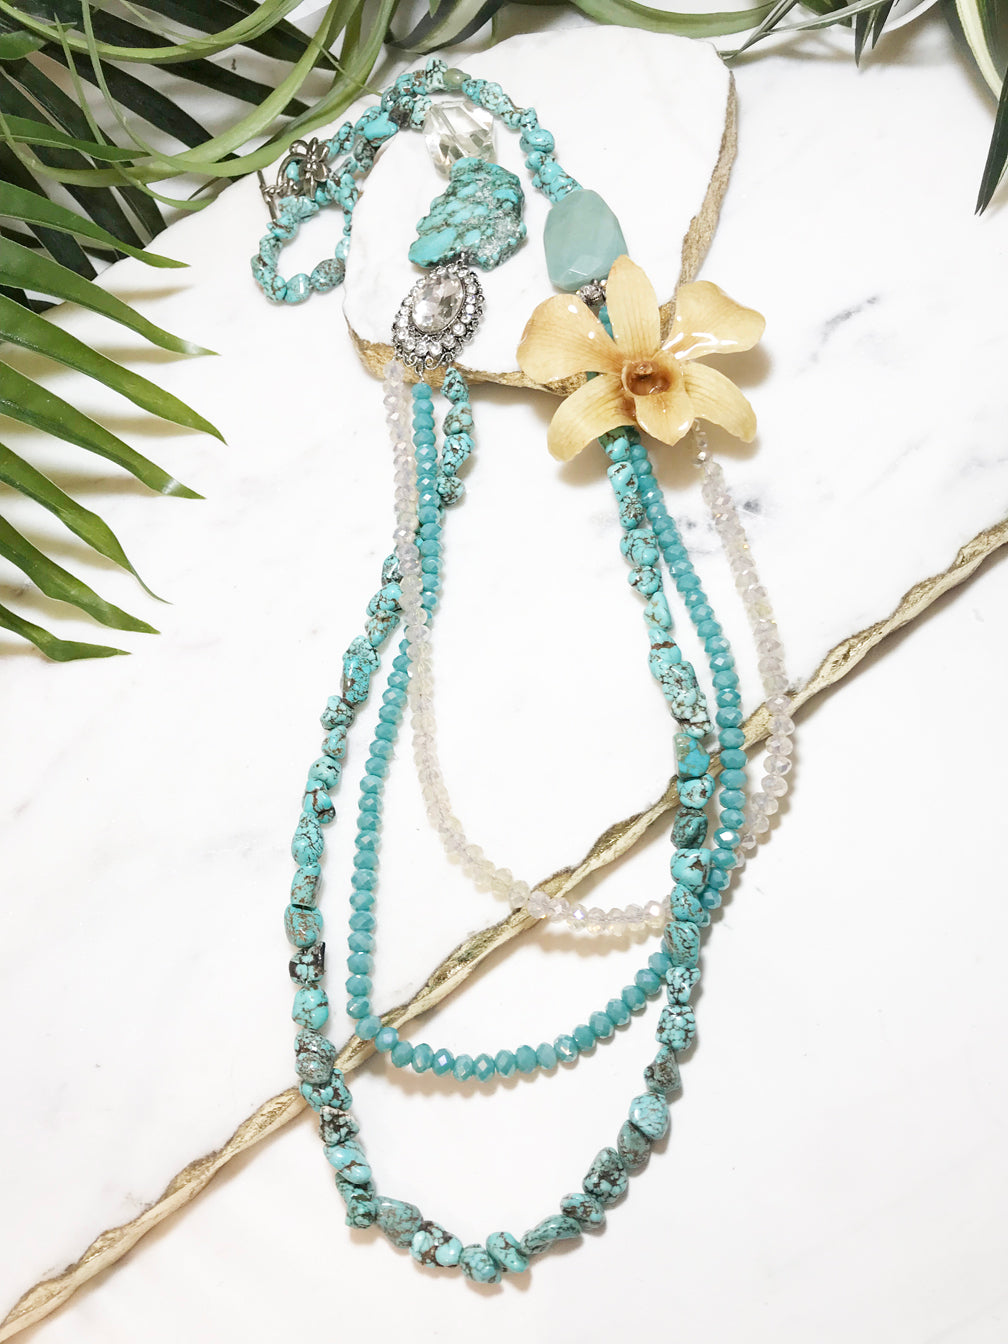 bloom tiered necklace - BL-T-004-NL